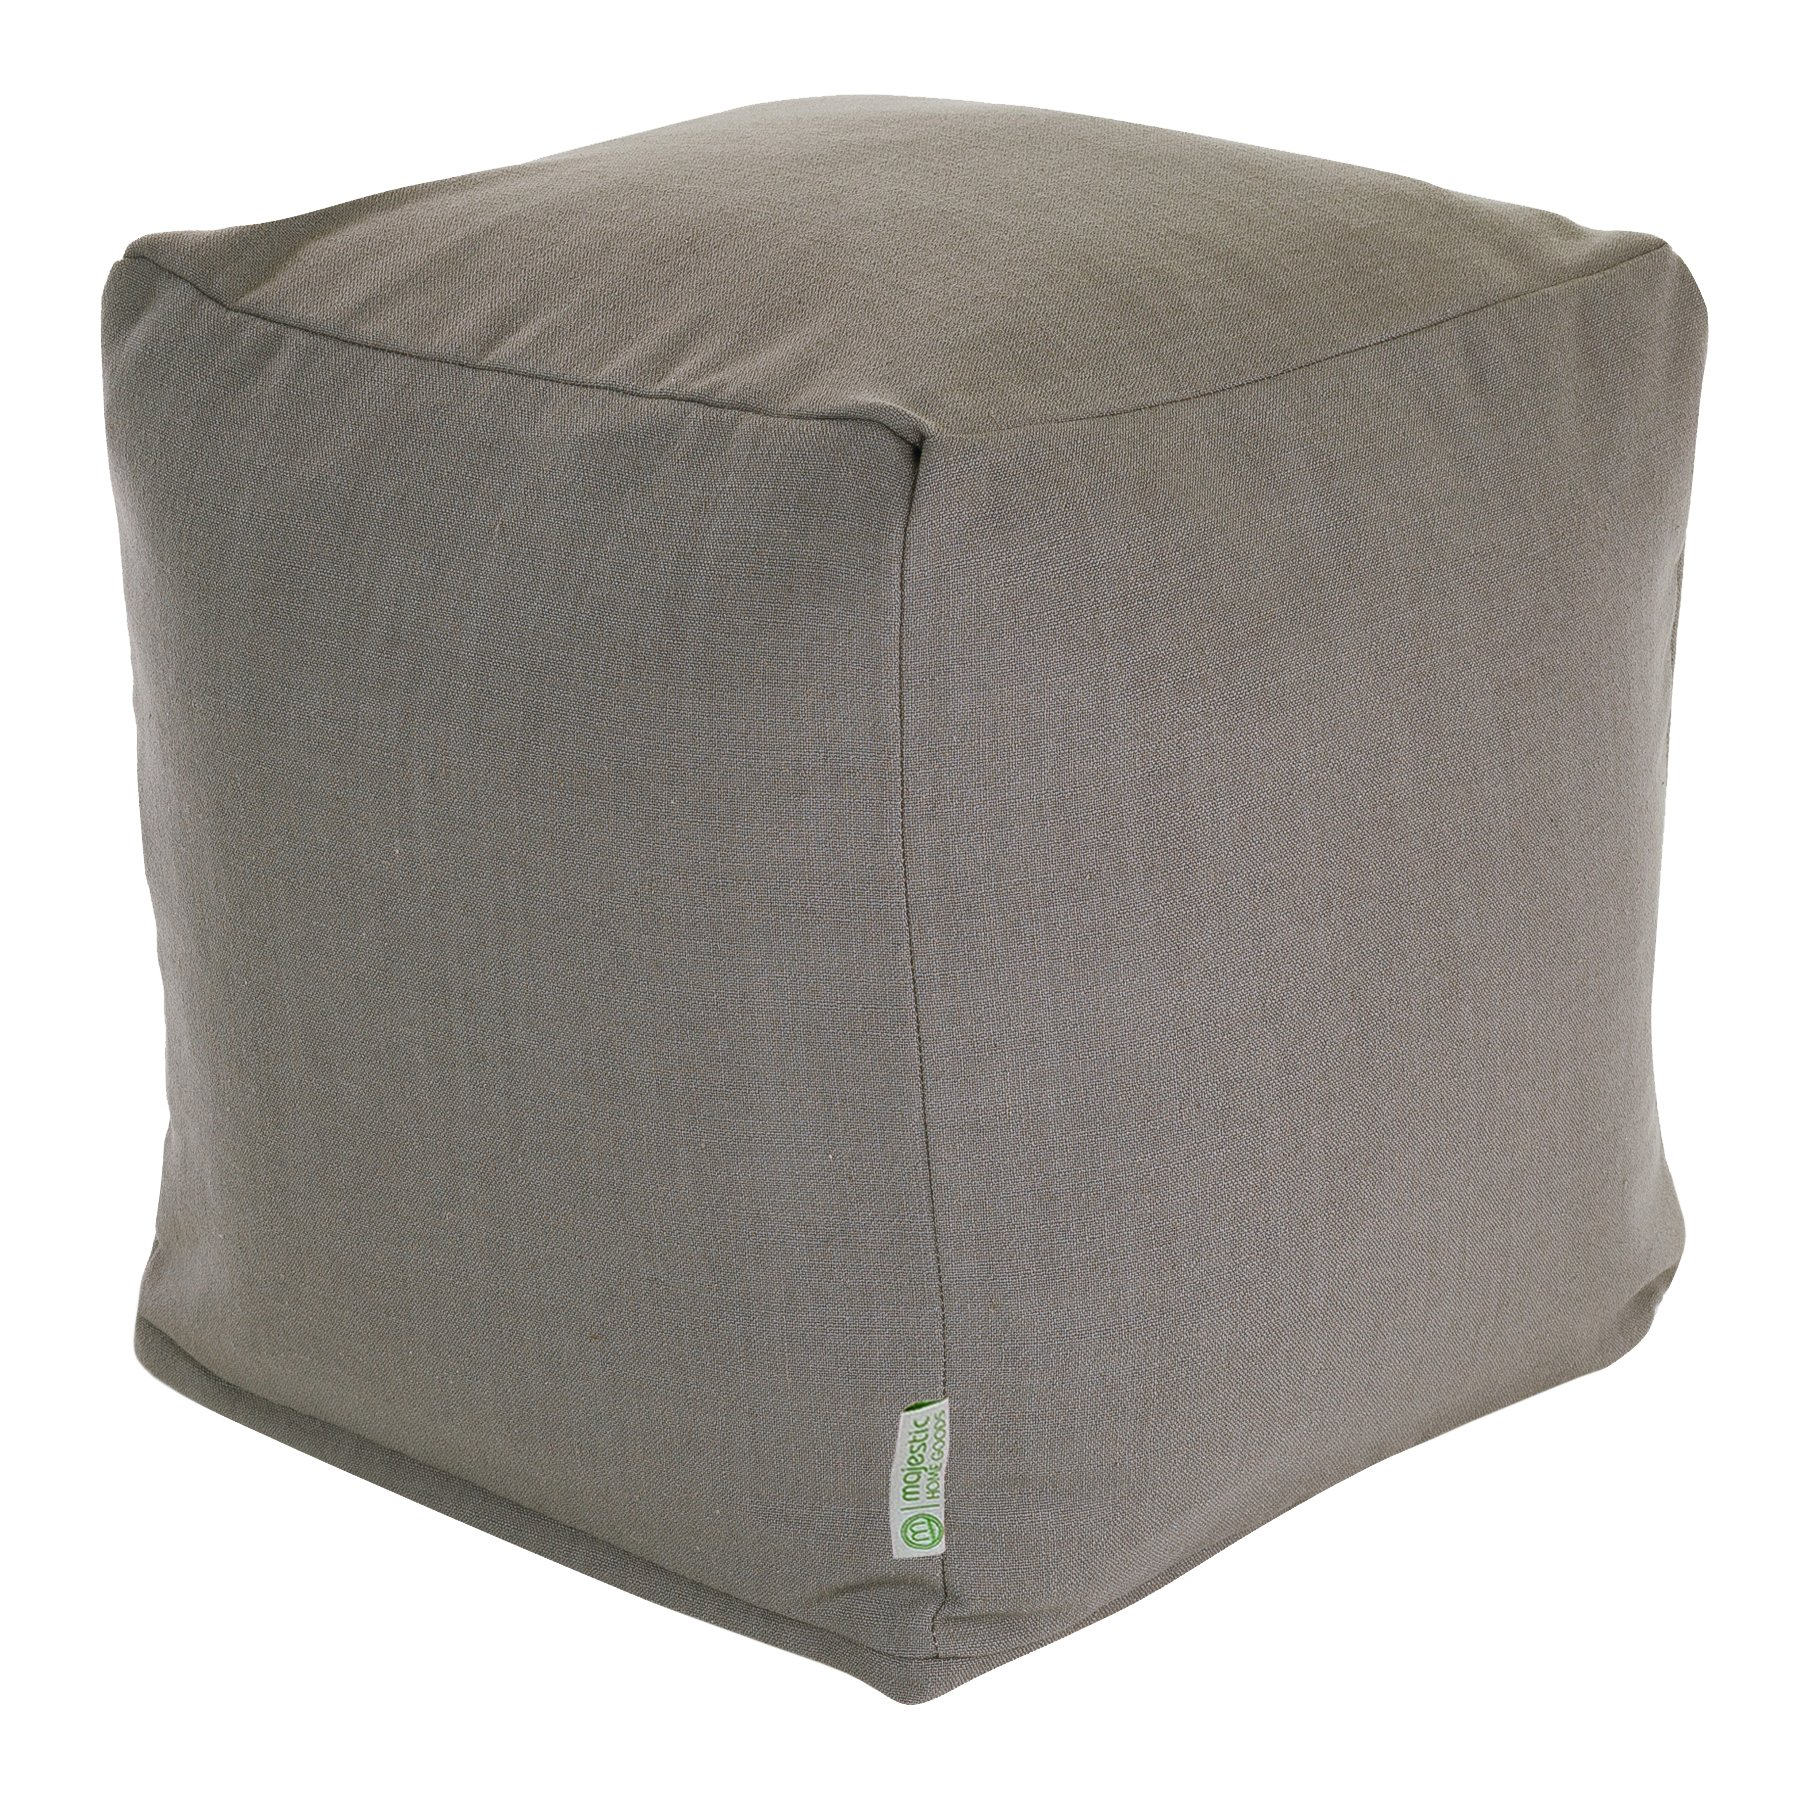 Majestic Home Goods Gray Wales Indoor Bean Bag Ottoman Pouf Cube 17'' L x 17'' W x 17'' H by Majestic Home Goods